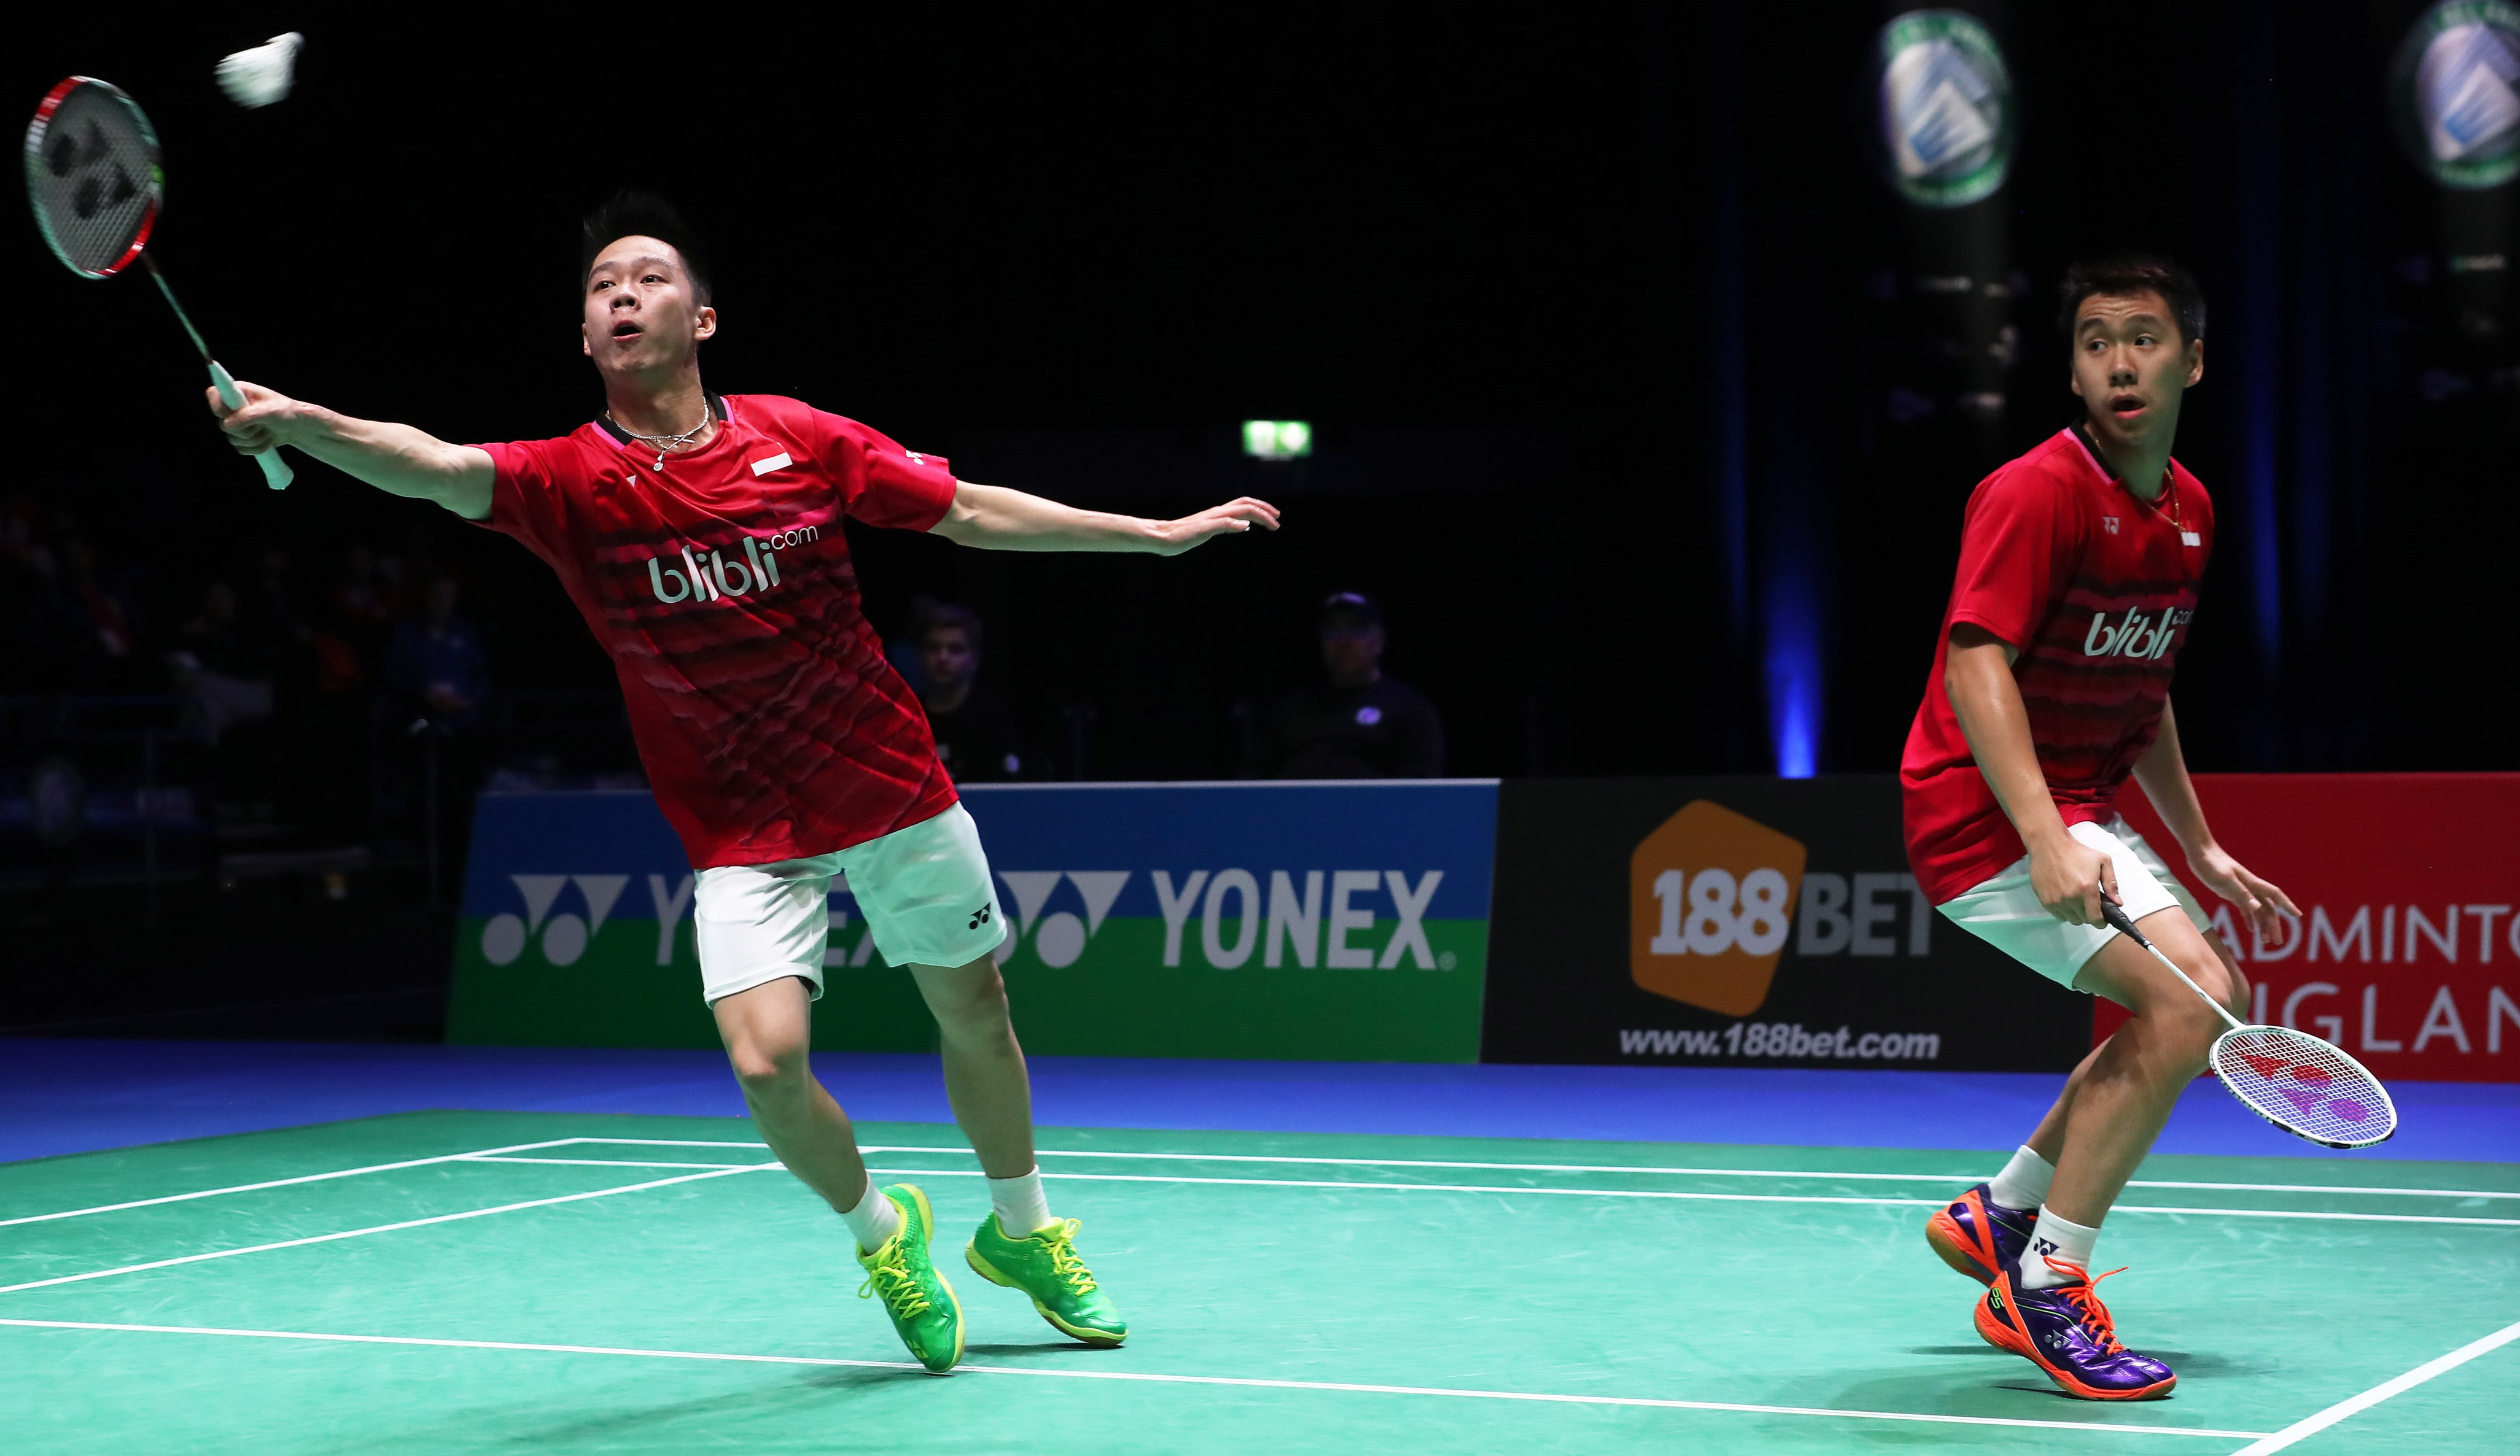 All England 2017 - Day 4 - Gideon & Sukamuljo - Indonesia